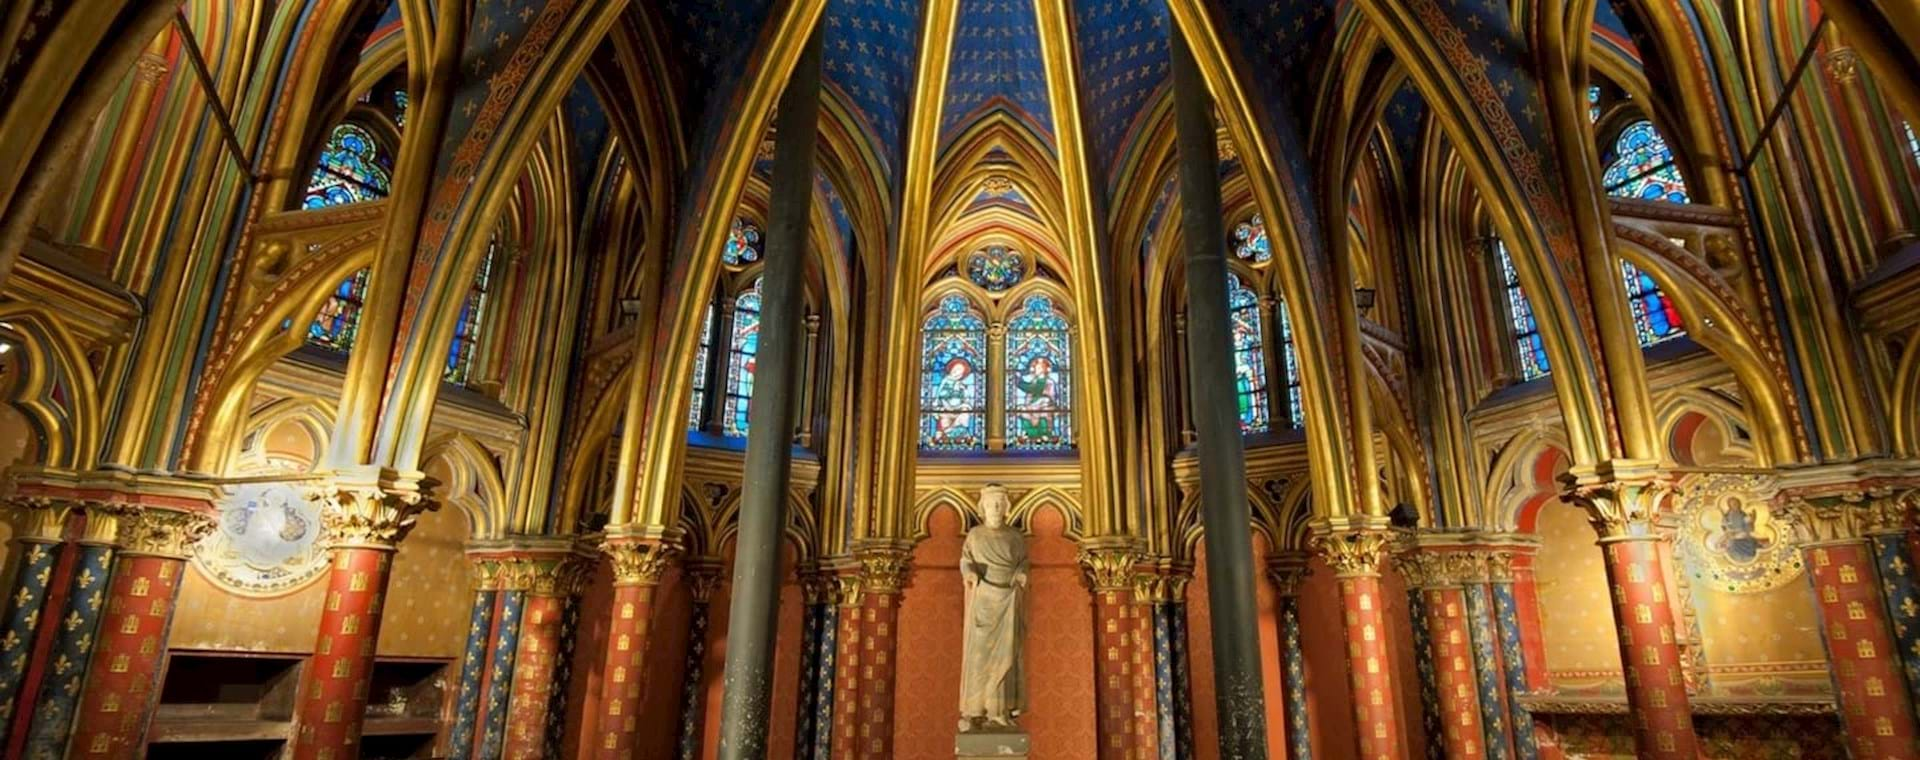 Notre Dame Island with Sainte Chapelle & Historic Medieval Paris Walking Tour